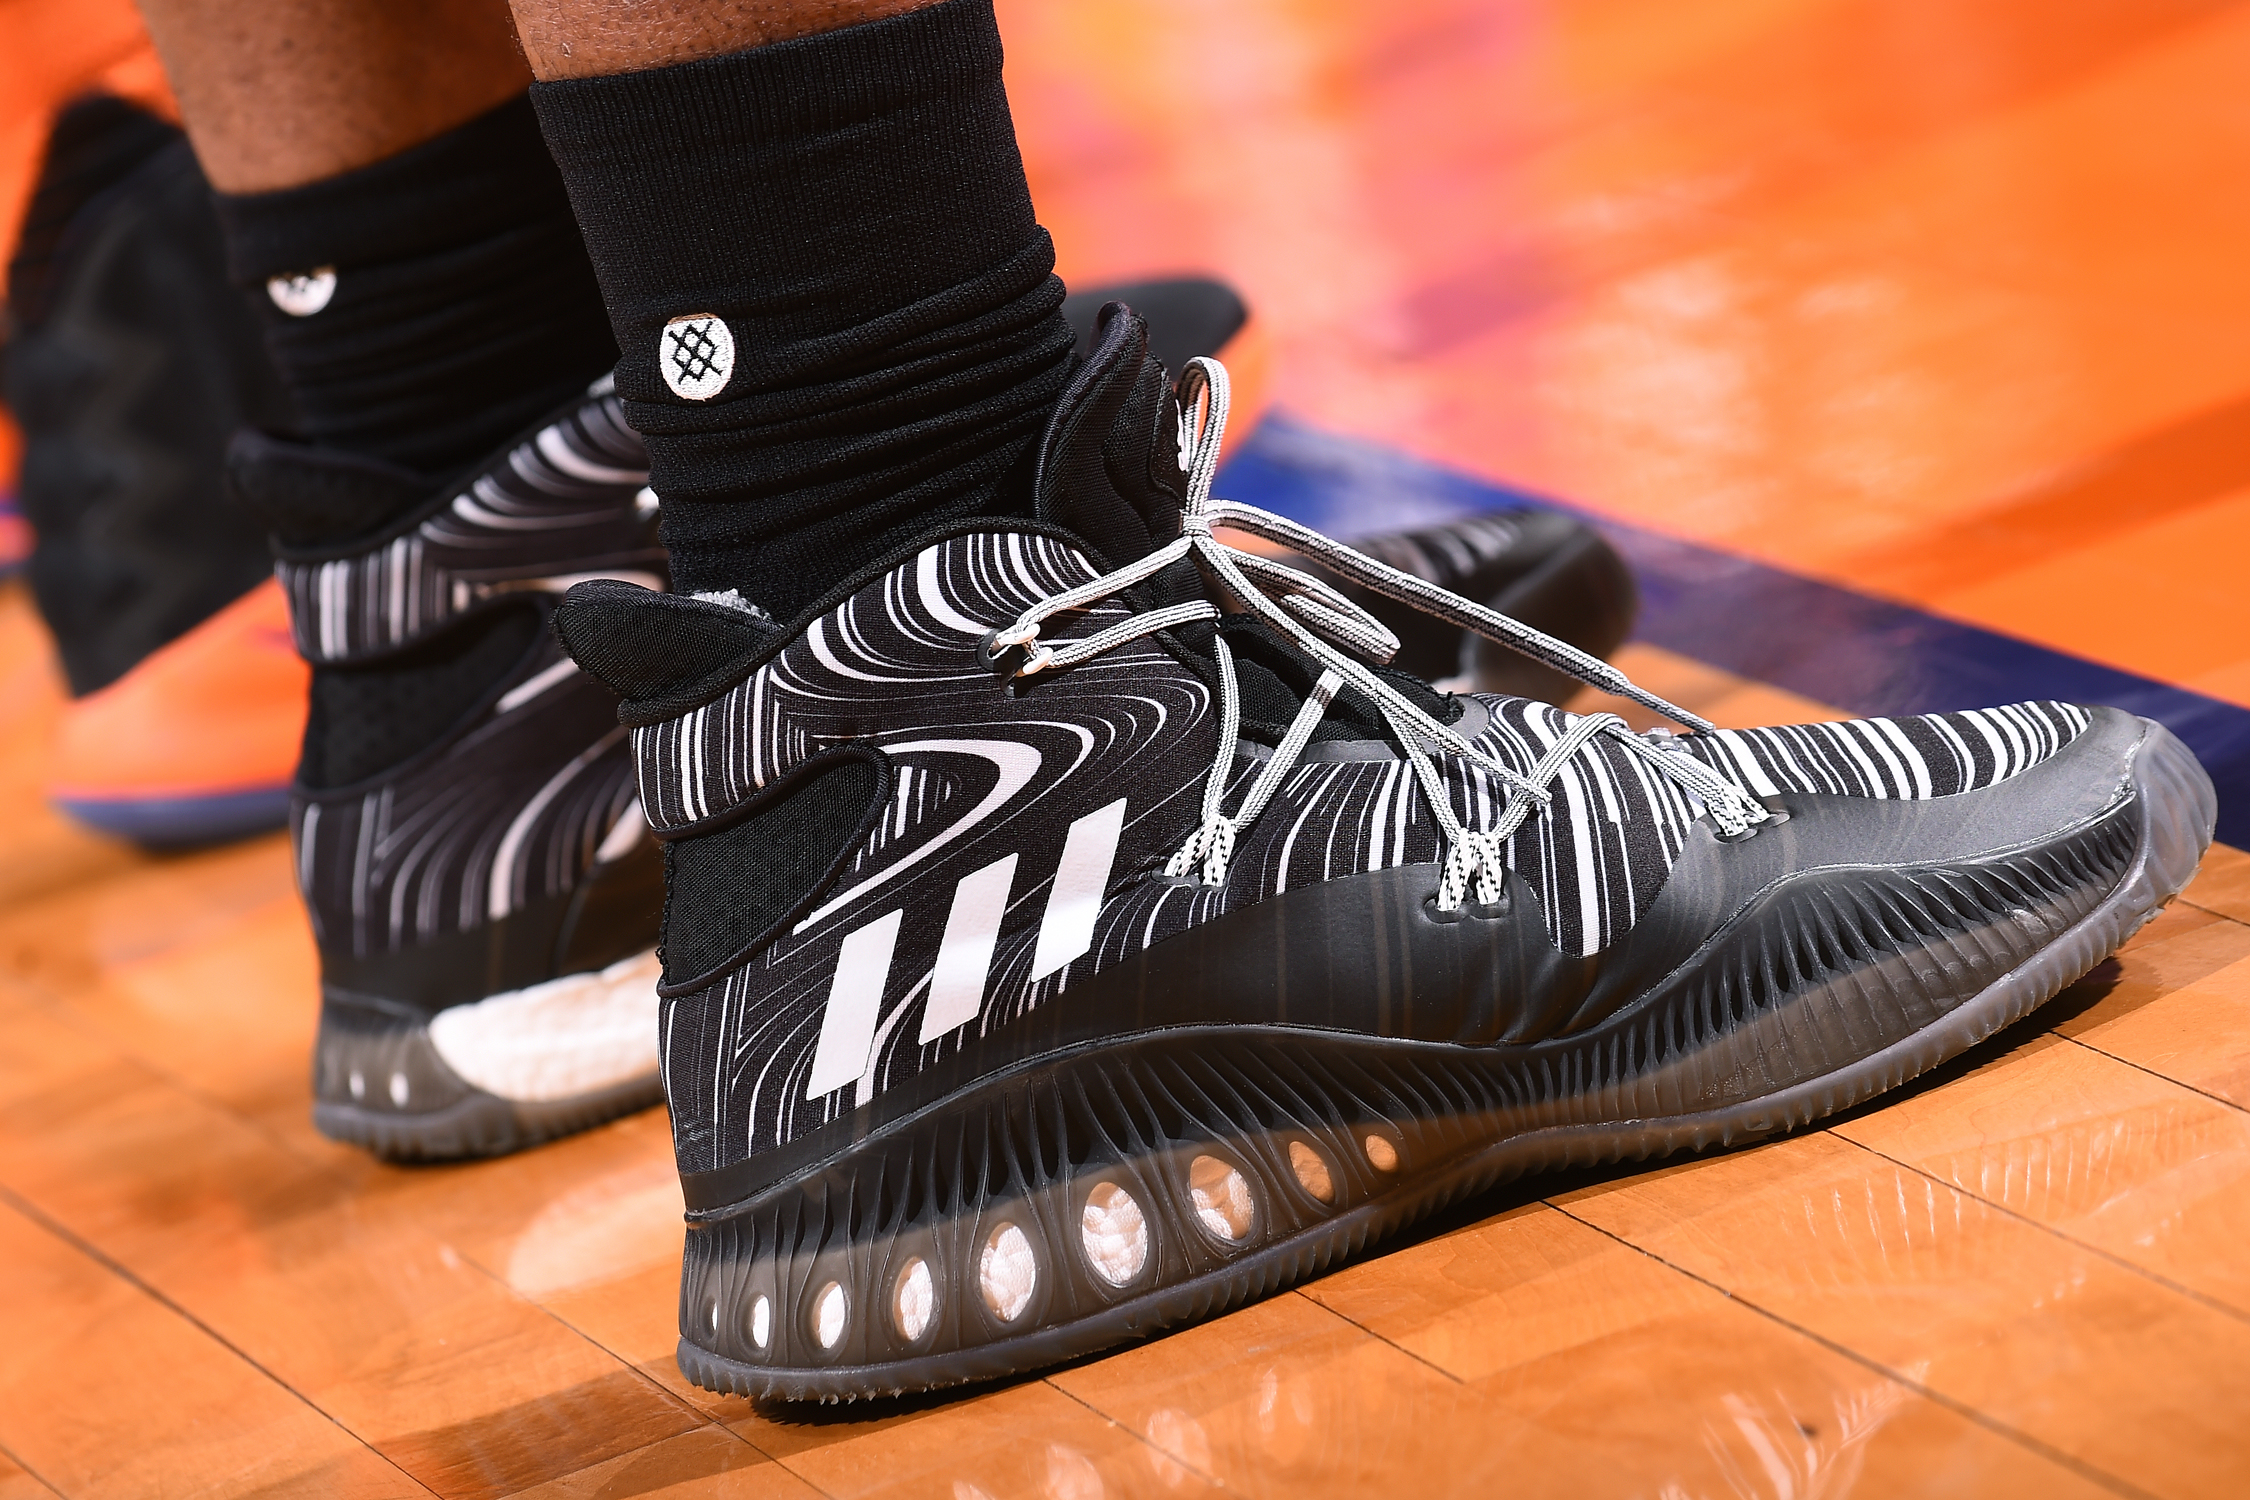 adidas Crazy Explosive worn by Kevon Looney